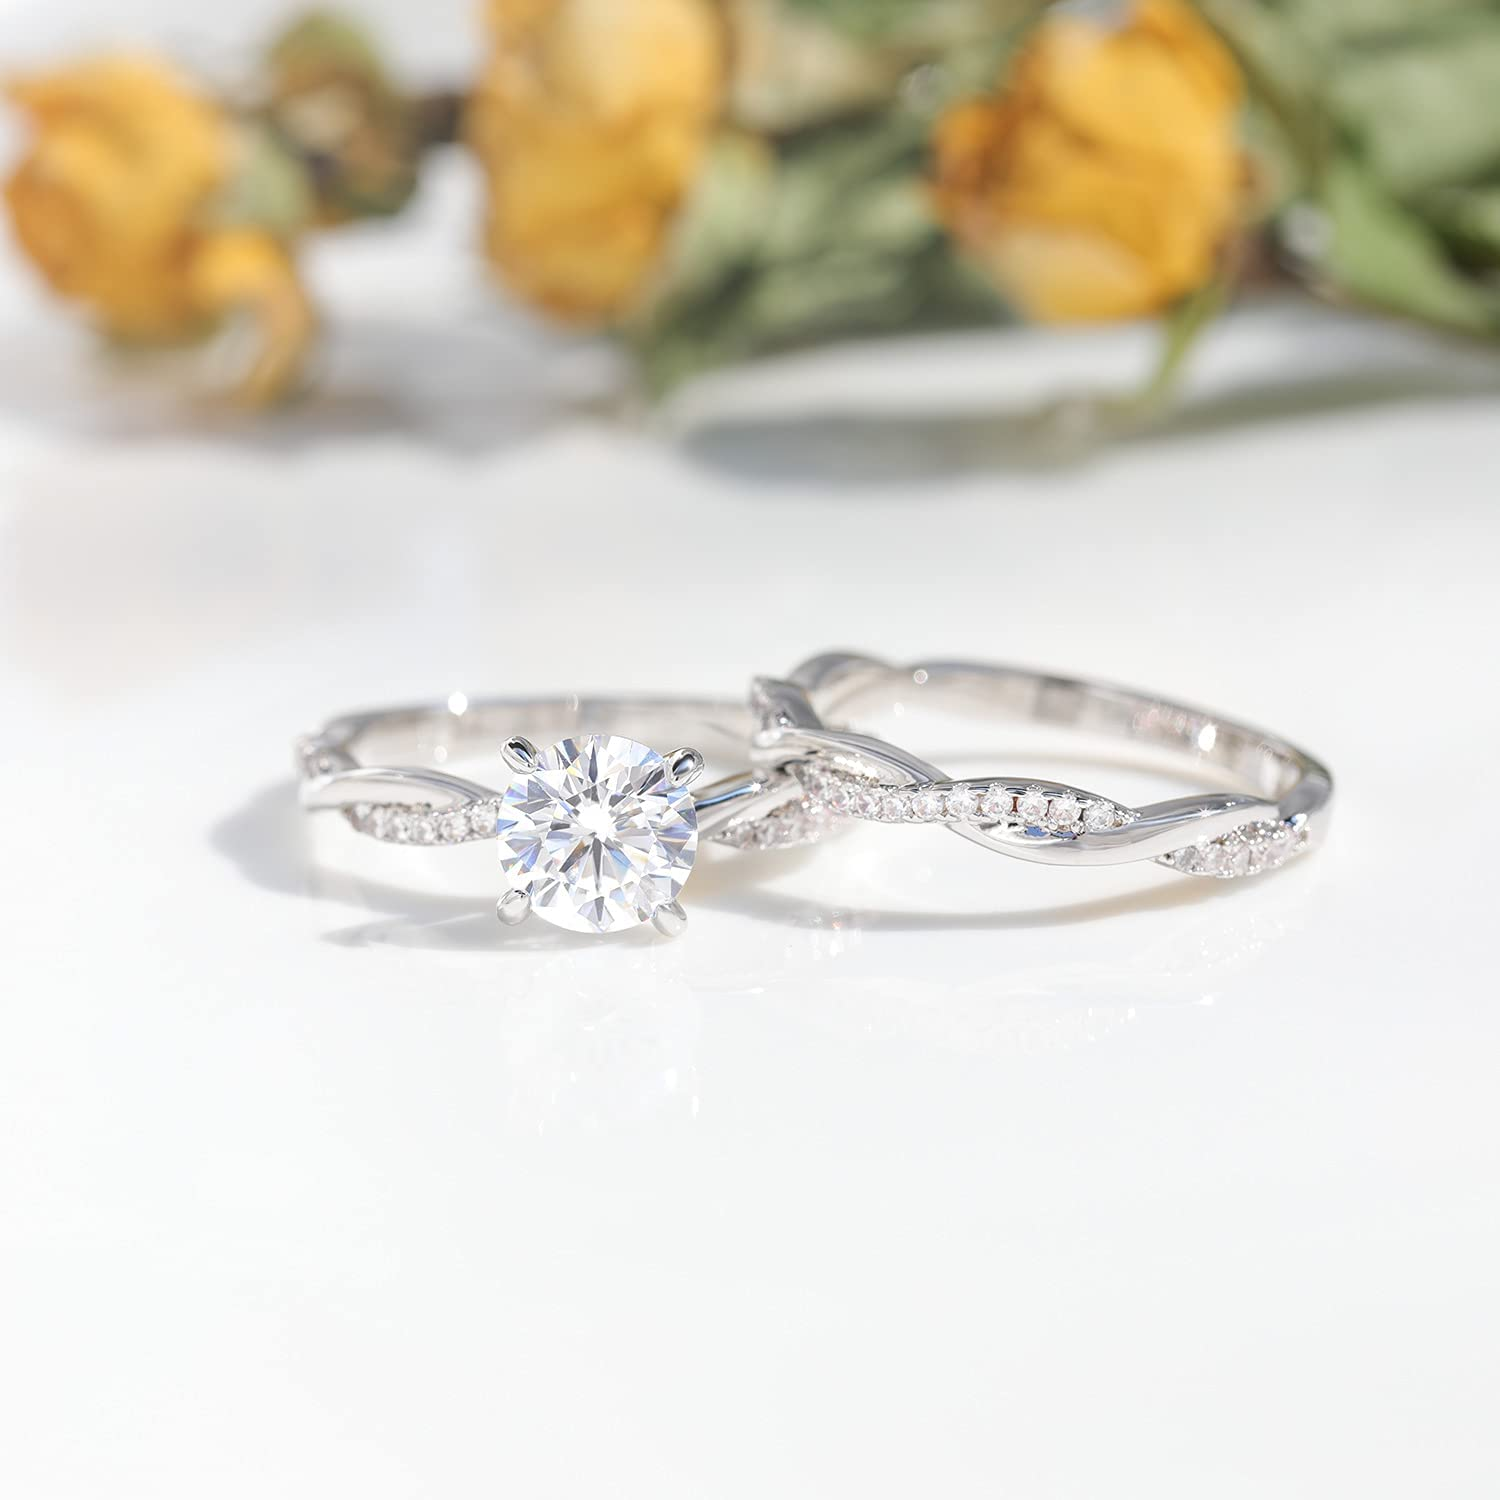 Greenpod 1.25ct Engagement Rings for Women Round Bridal Ring Sets Cubic Zirconia Wedding Band Twisting Infinity Pave Set Size 4-12